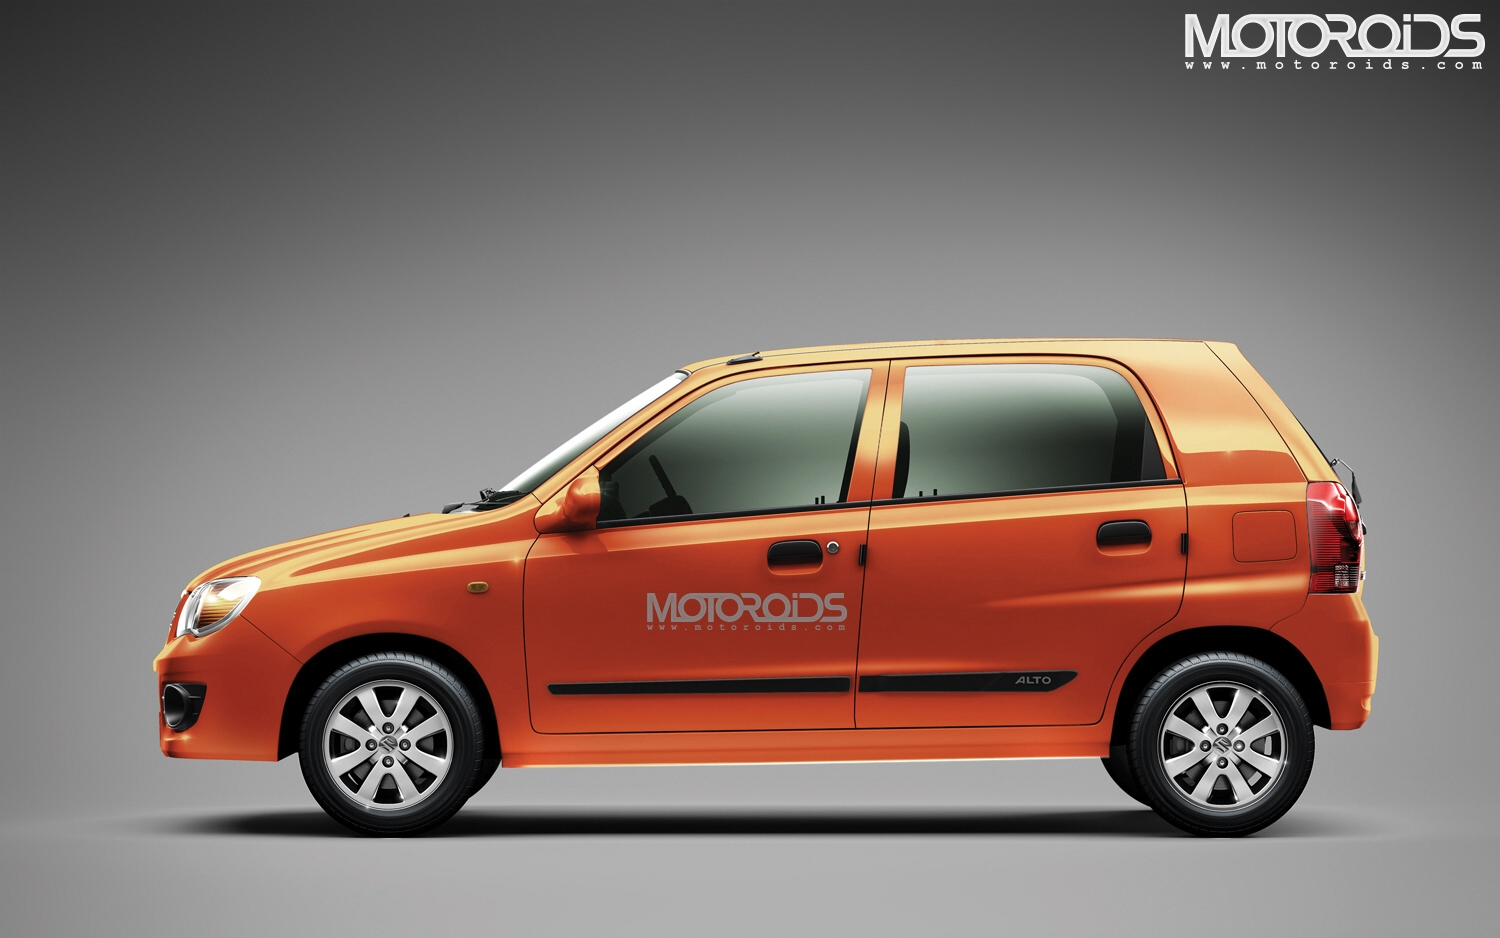 2011 maruti suzuki alto k10 w 1 0 litre k series engine launched in india all details revealed